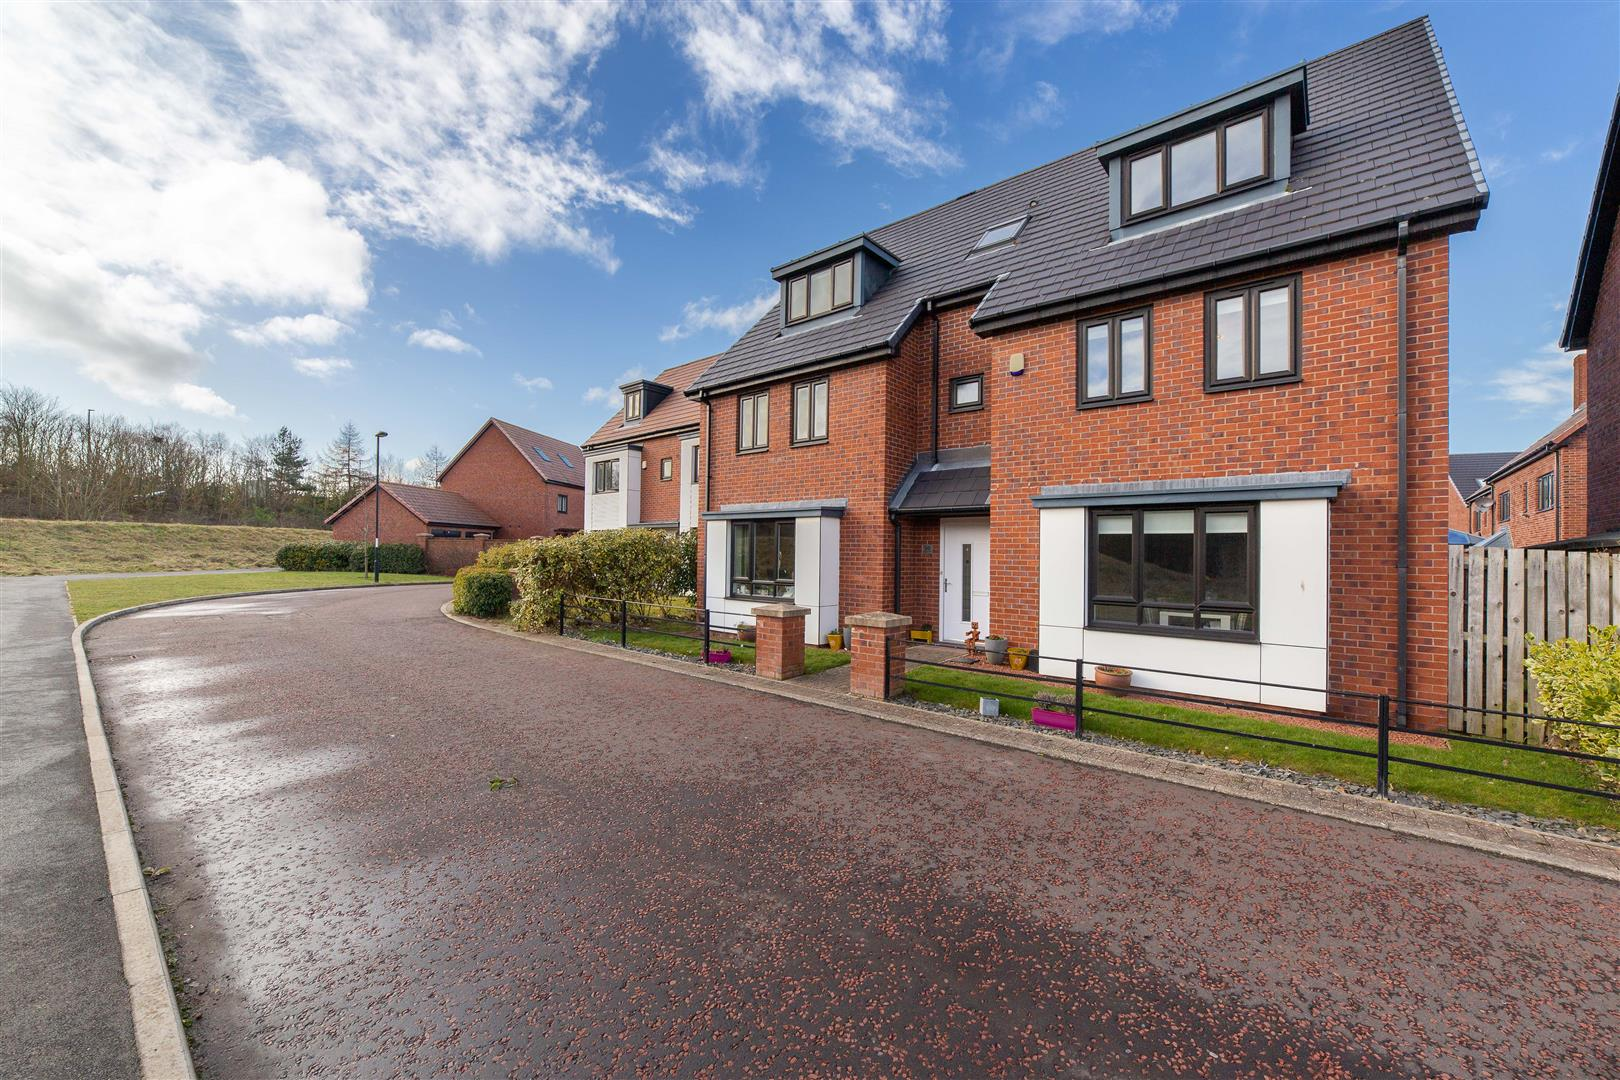 6 bed detached house for sale in Newcastle Upon Tyne, NE13 9AY  - Property Image 1